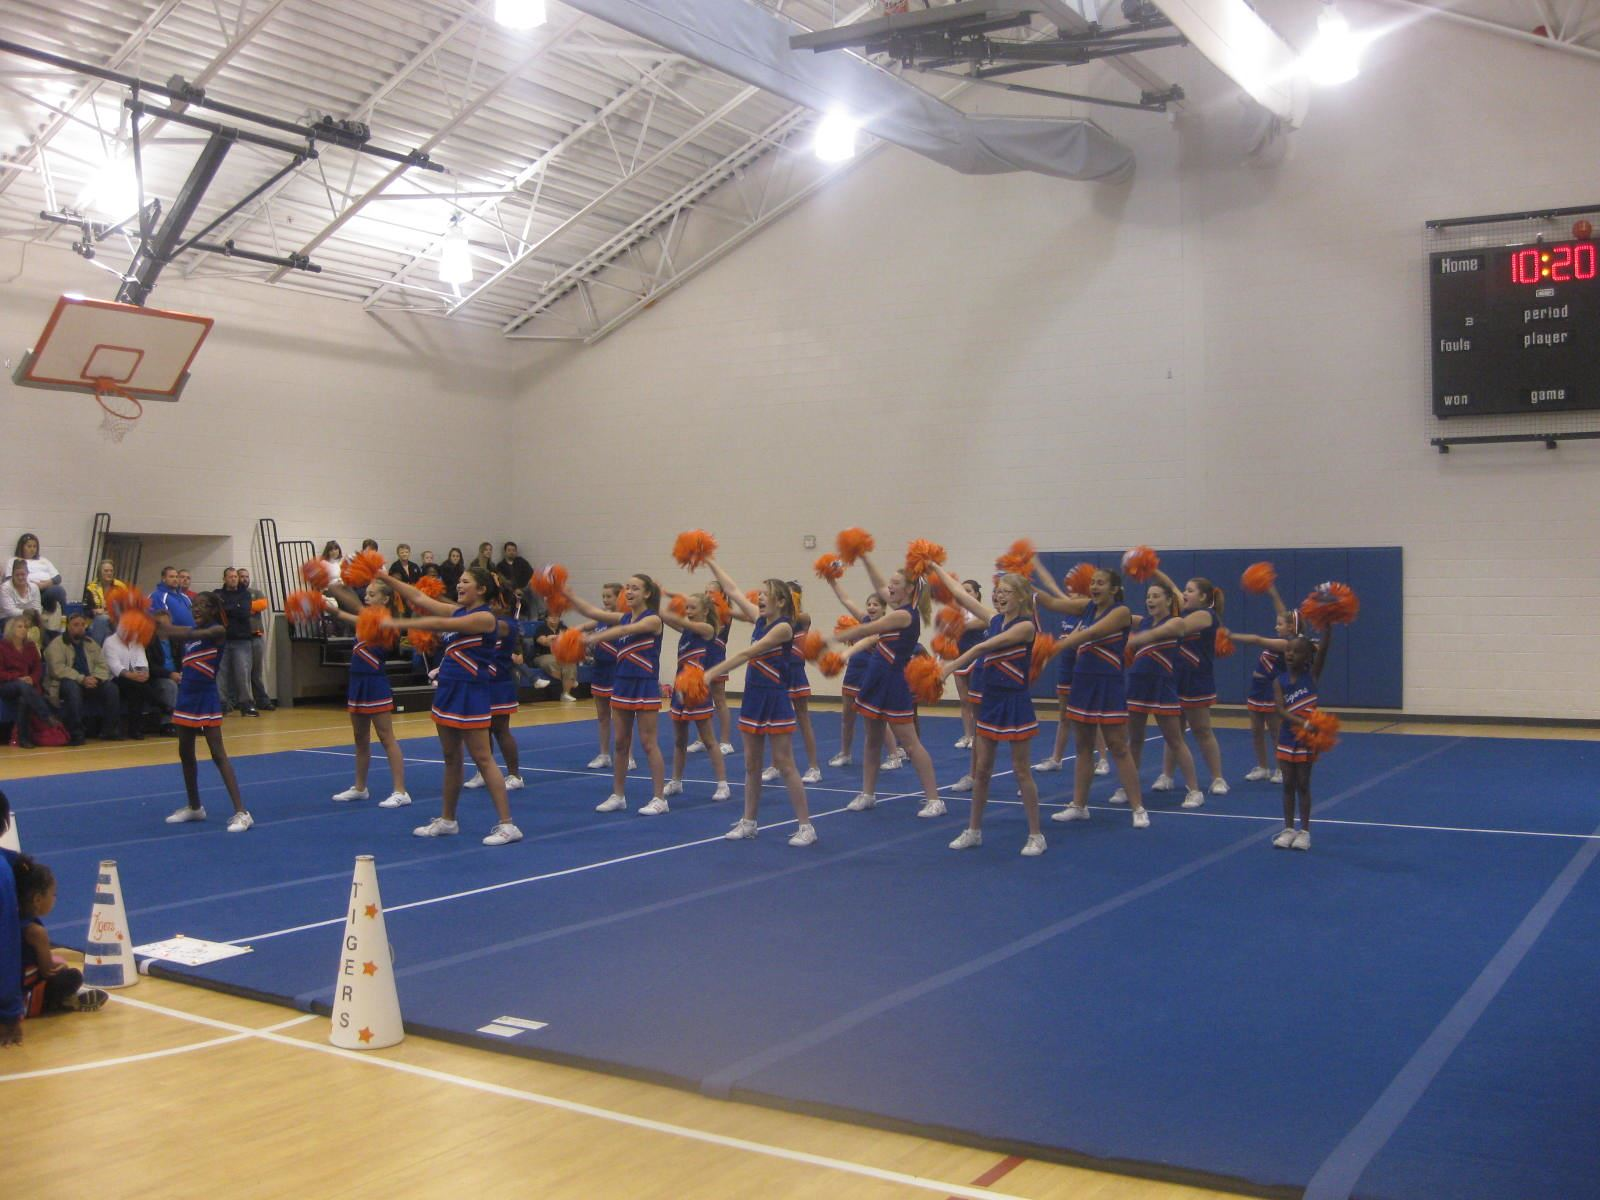 A group of cheerleaders doing a cheer routine.